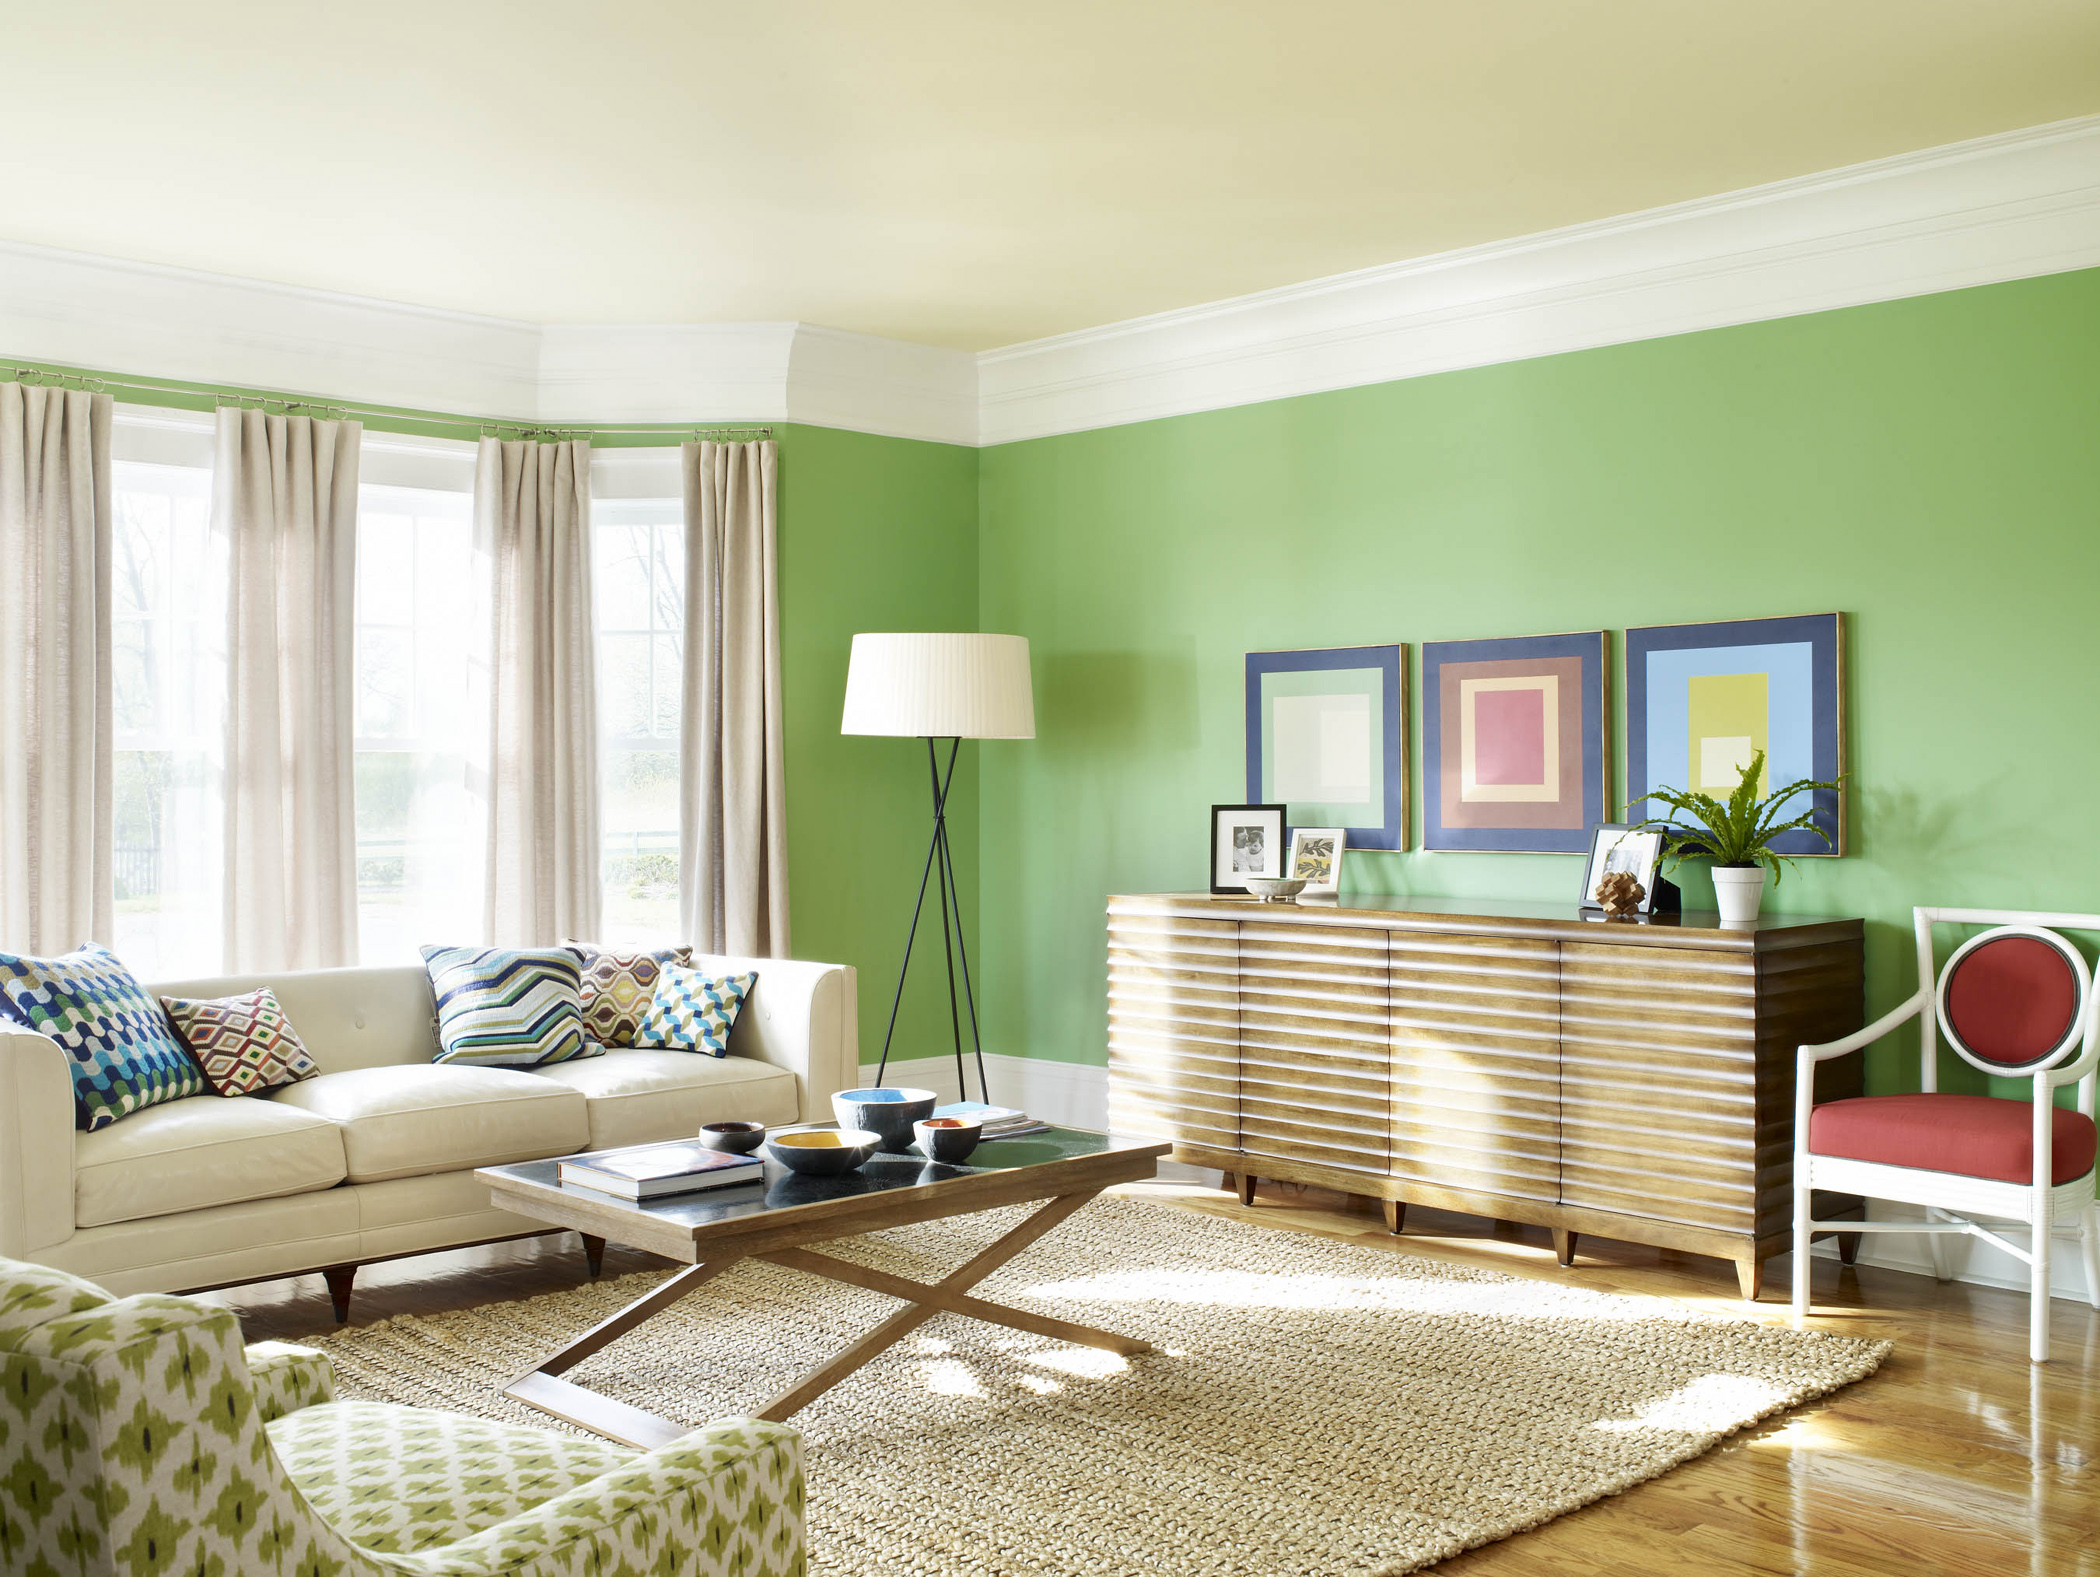 Decorating Ideas For Living Room With Green Wall (View 9 of 10)